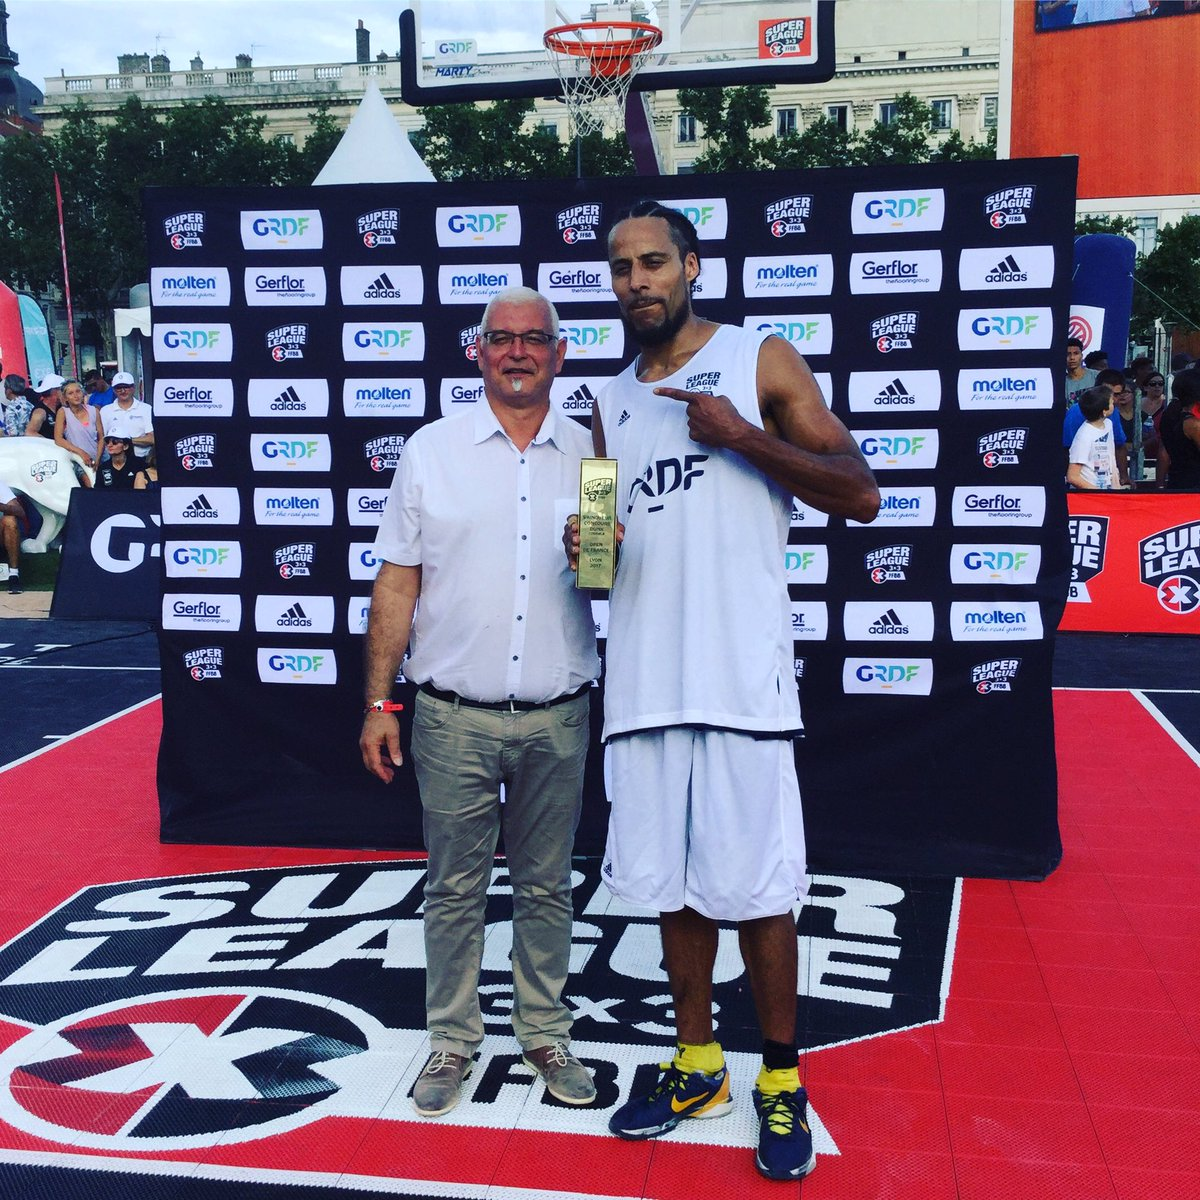 #Superleague3x3